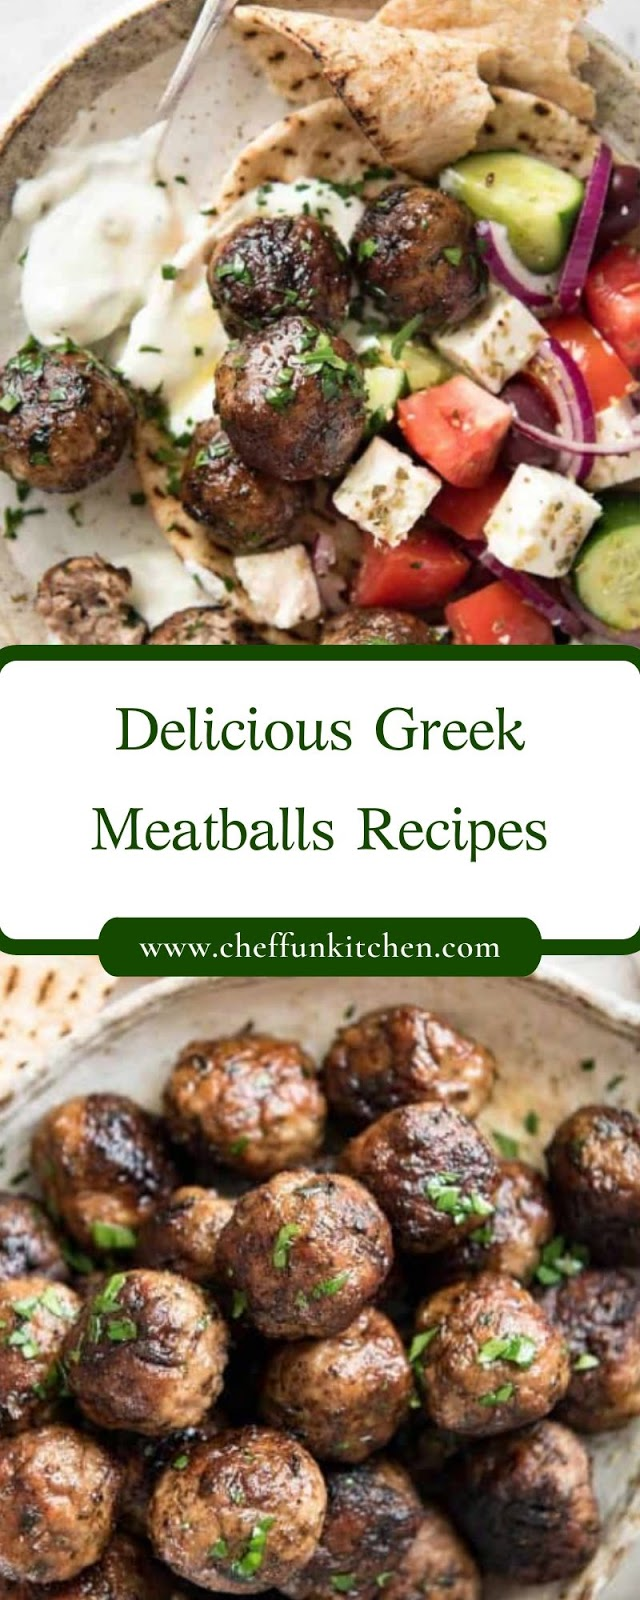 Delicious Greek Meatballs Recipes